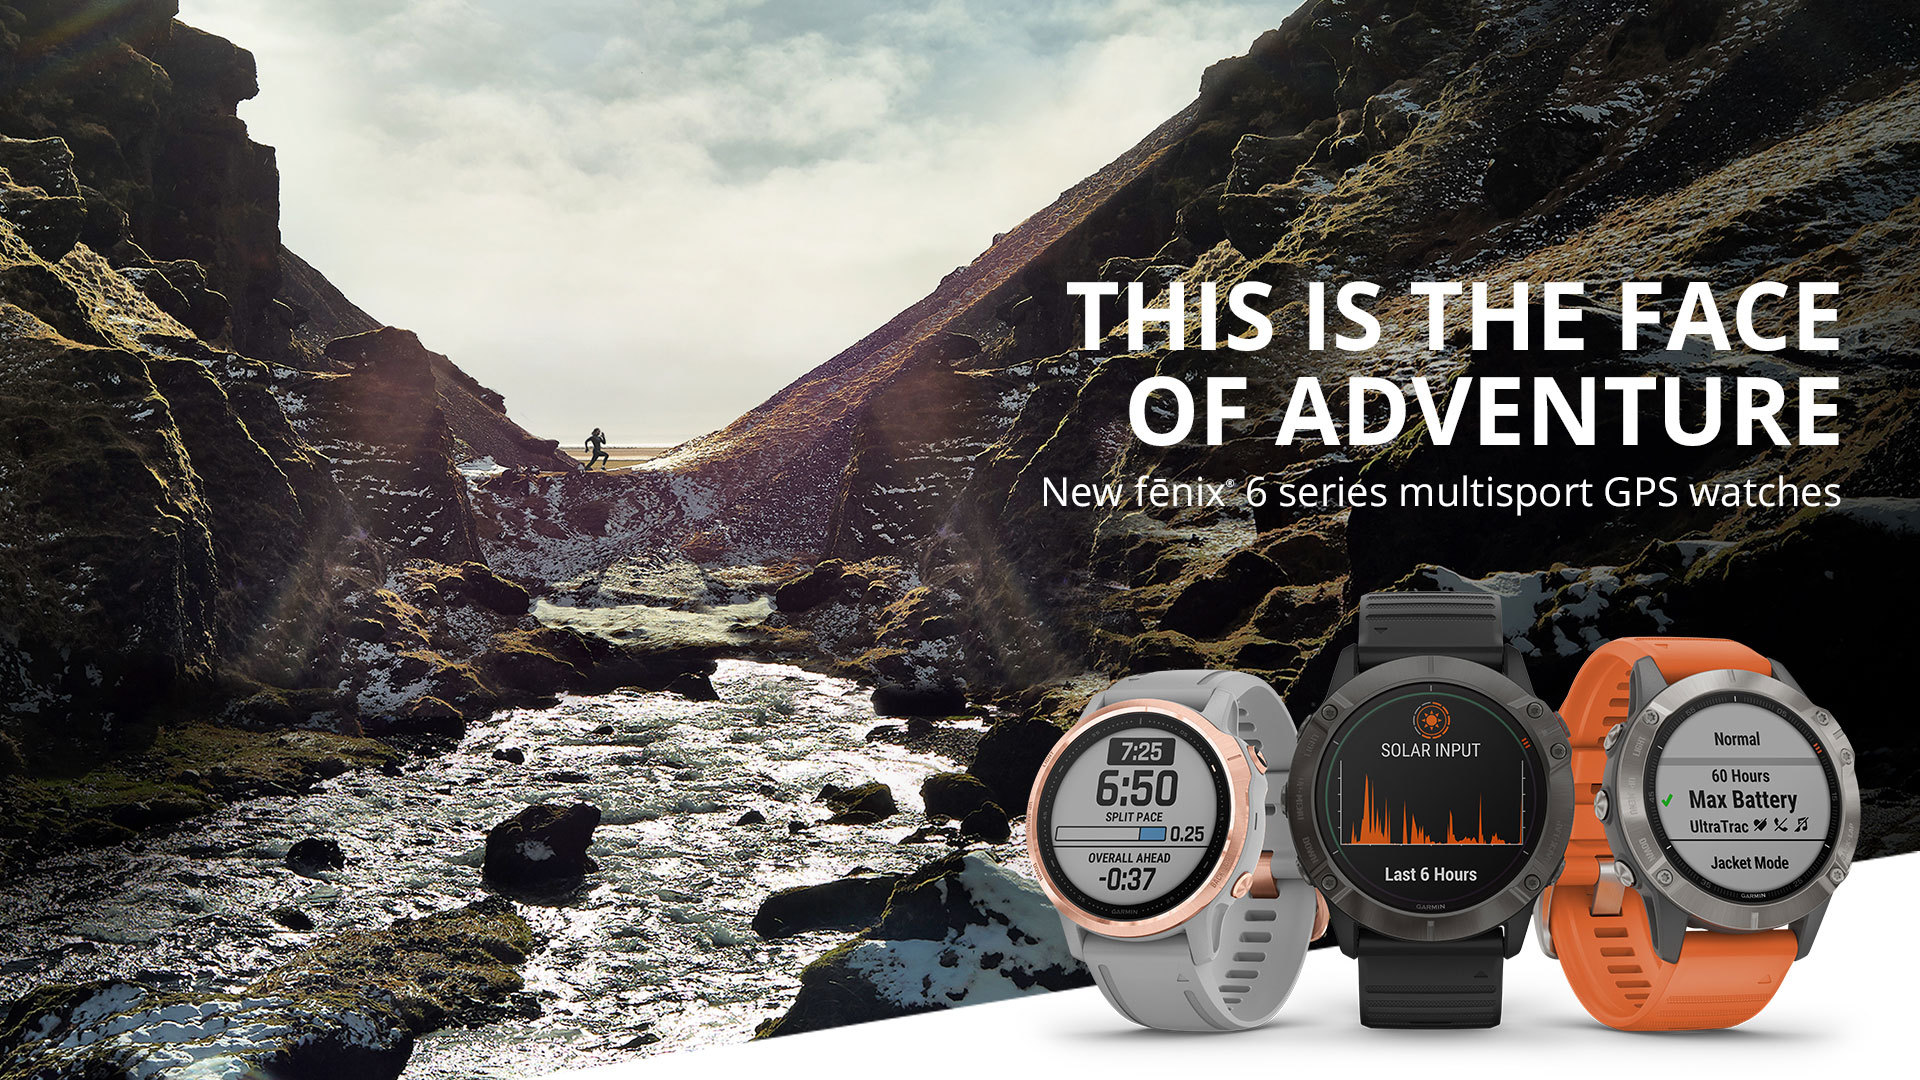 Garmin fenix 6 - The face of adventure